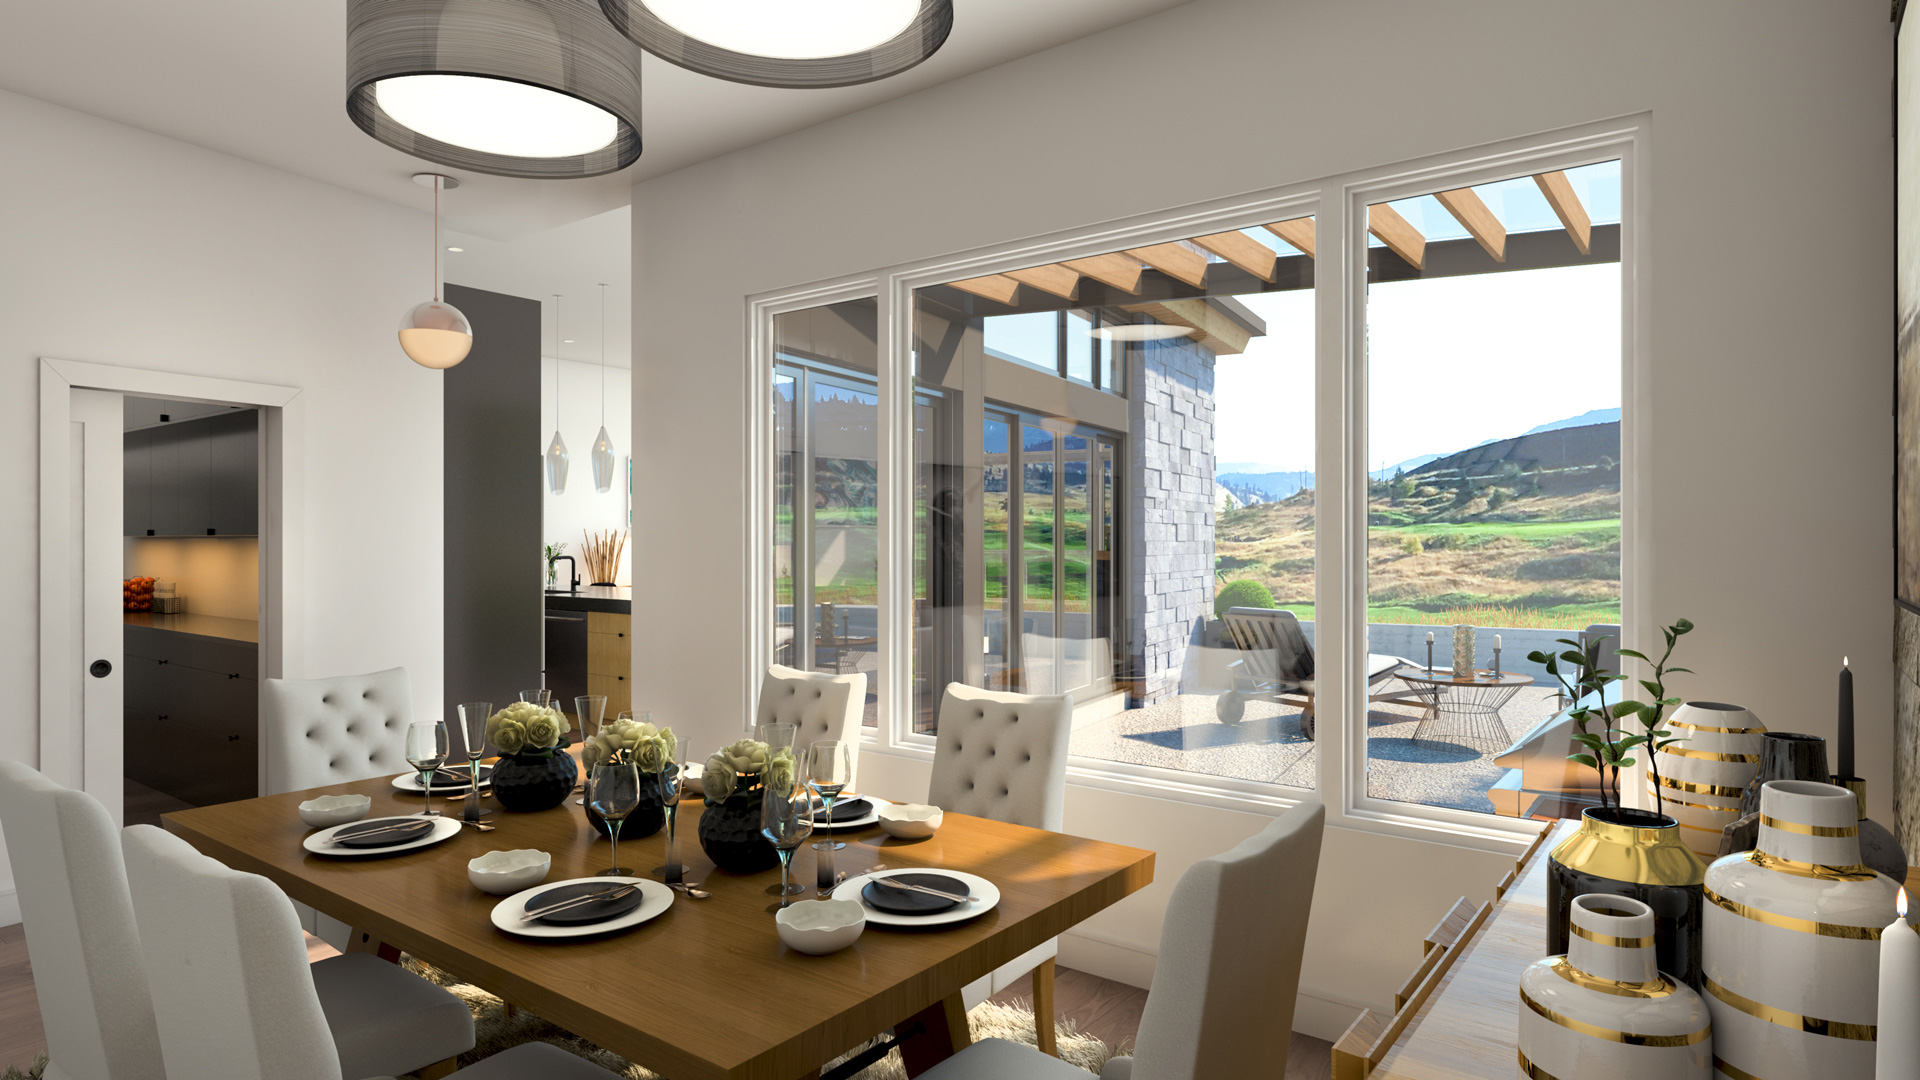 Predator Ridge Resorts Affinity Homes Foerster Theme 3D Interior Rendering - Dining Room